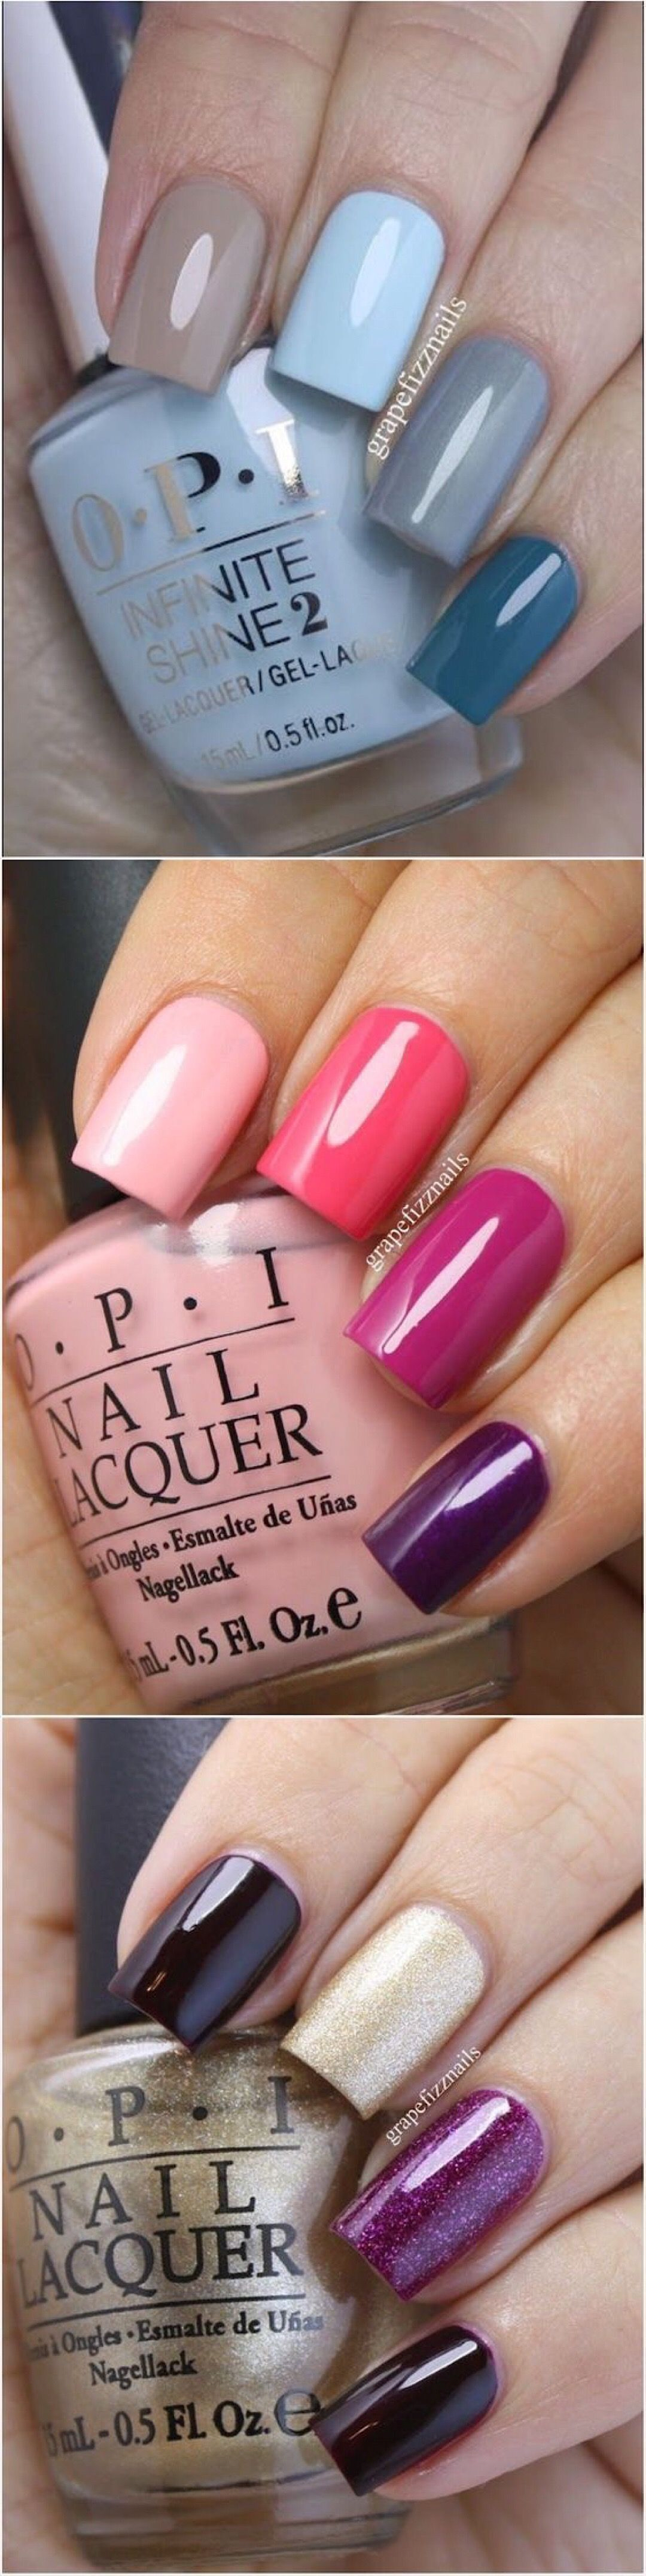 Nail Polish Color Ideas | Nagelschere, Nageldesign und Fingernägel